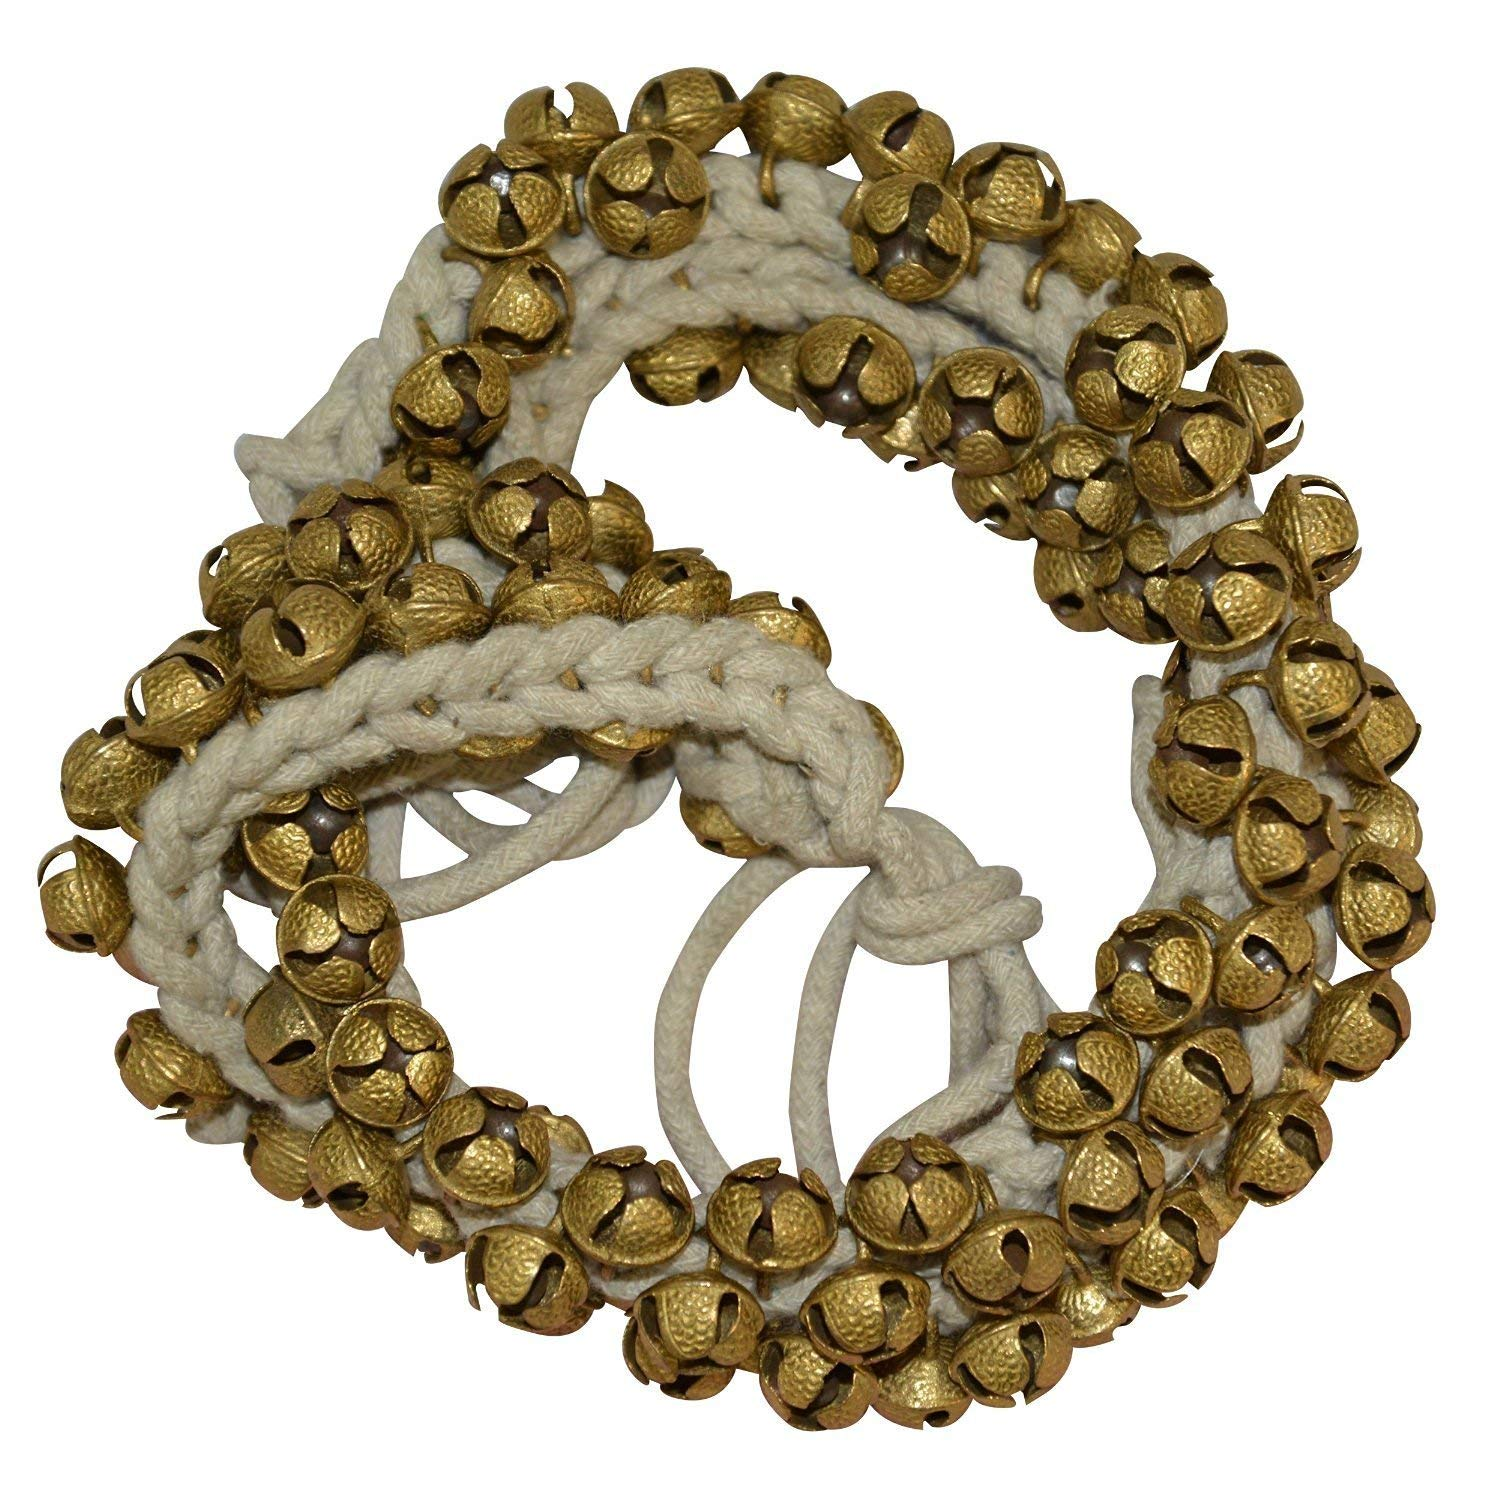 Brass Ghungroo with Big Bells (2 cm) -Set of 75 Pieces Ghungroo Kathak anklet women dance accessories